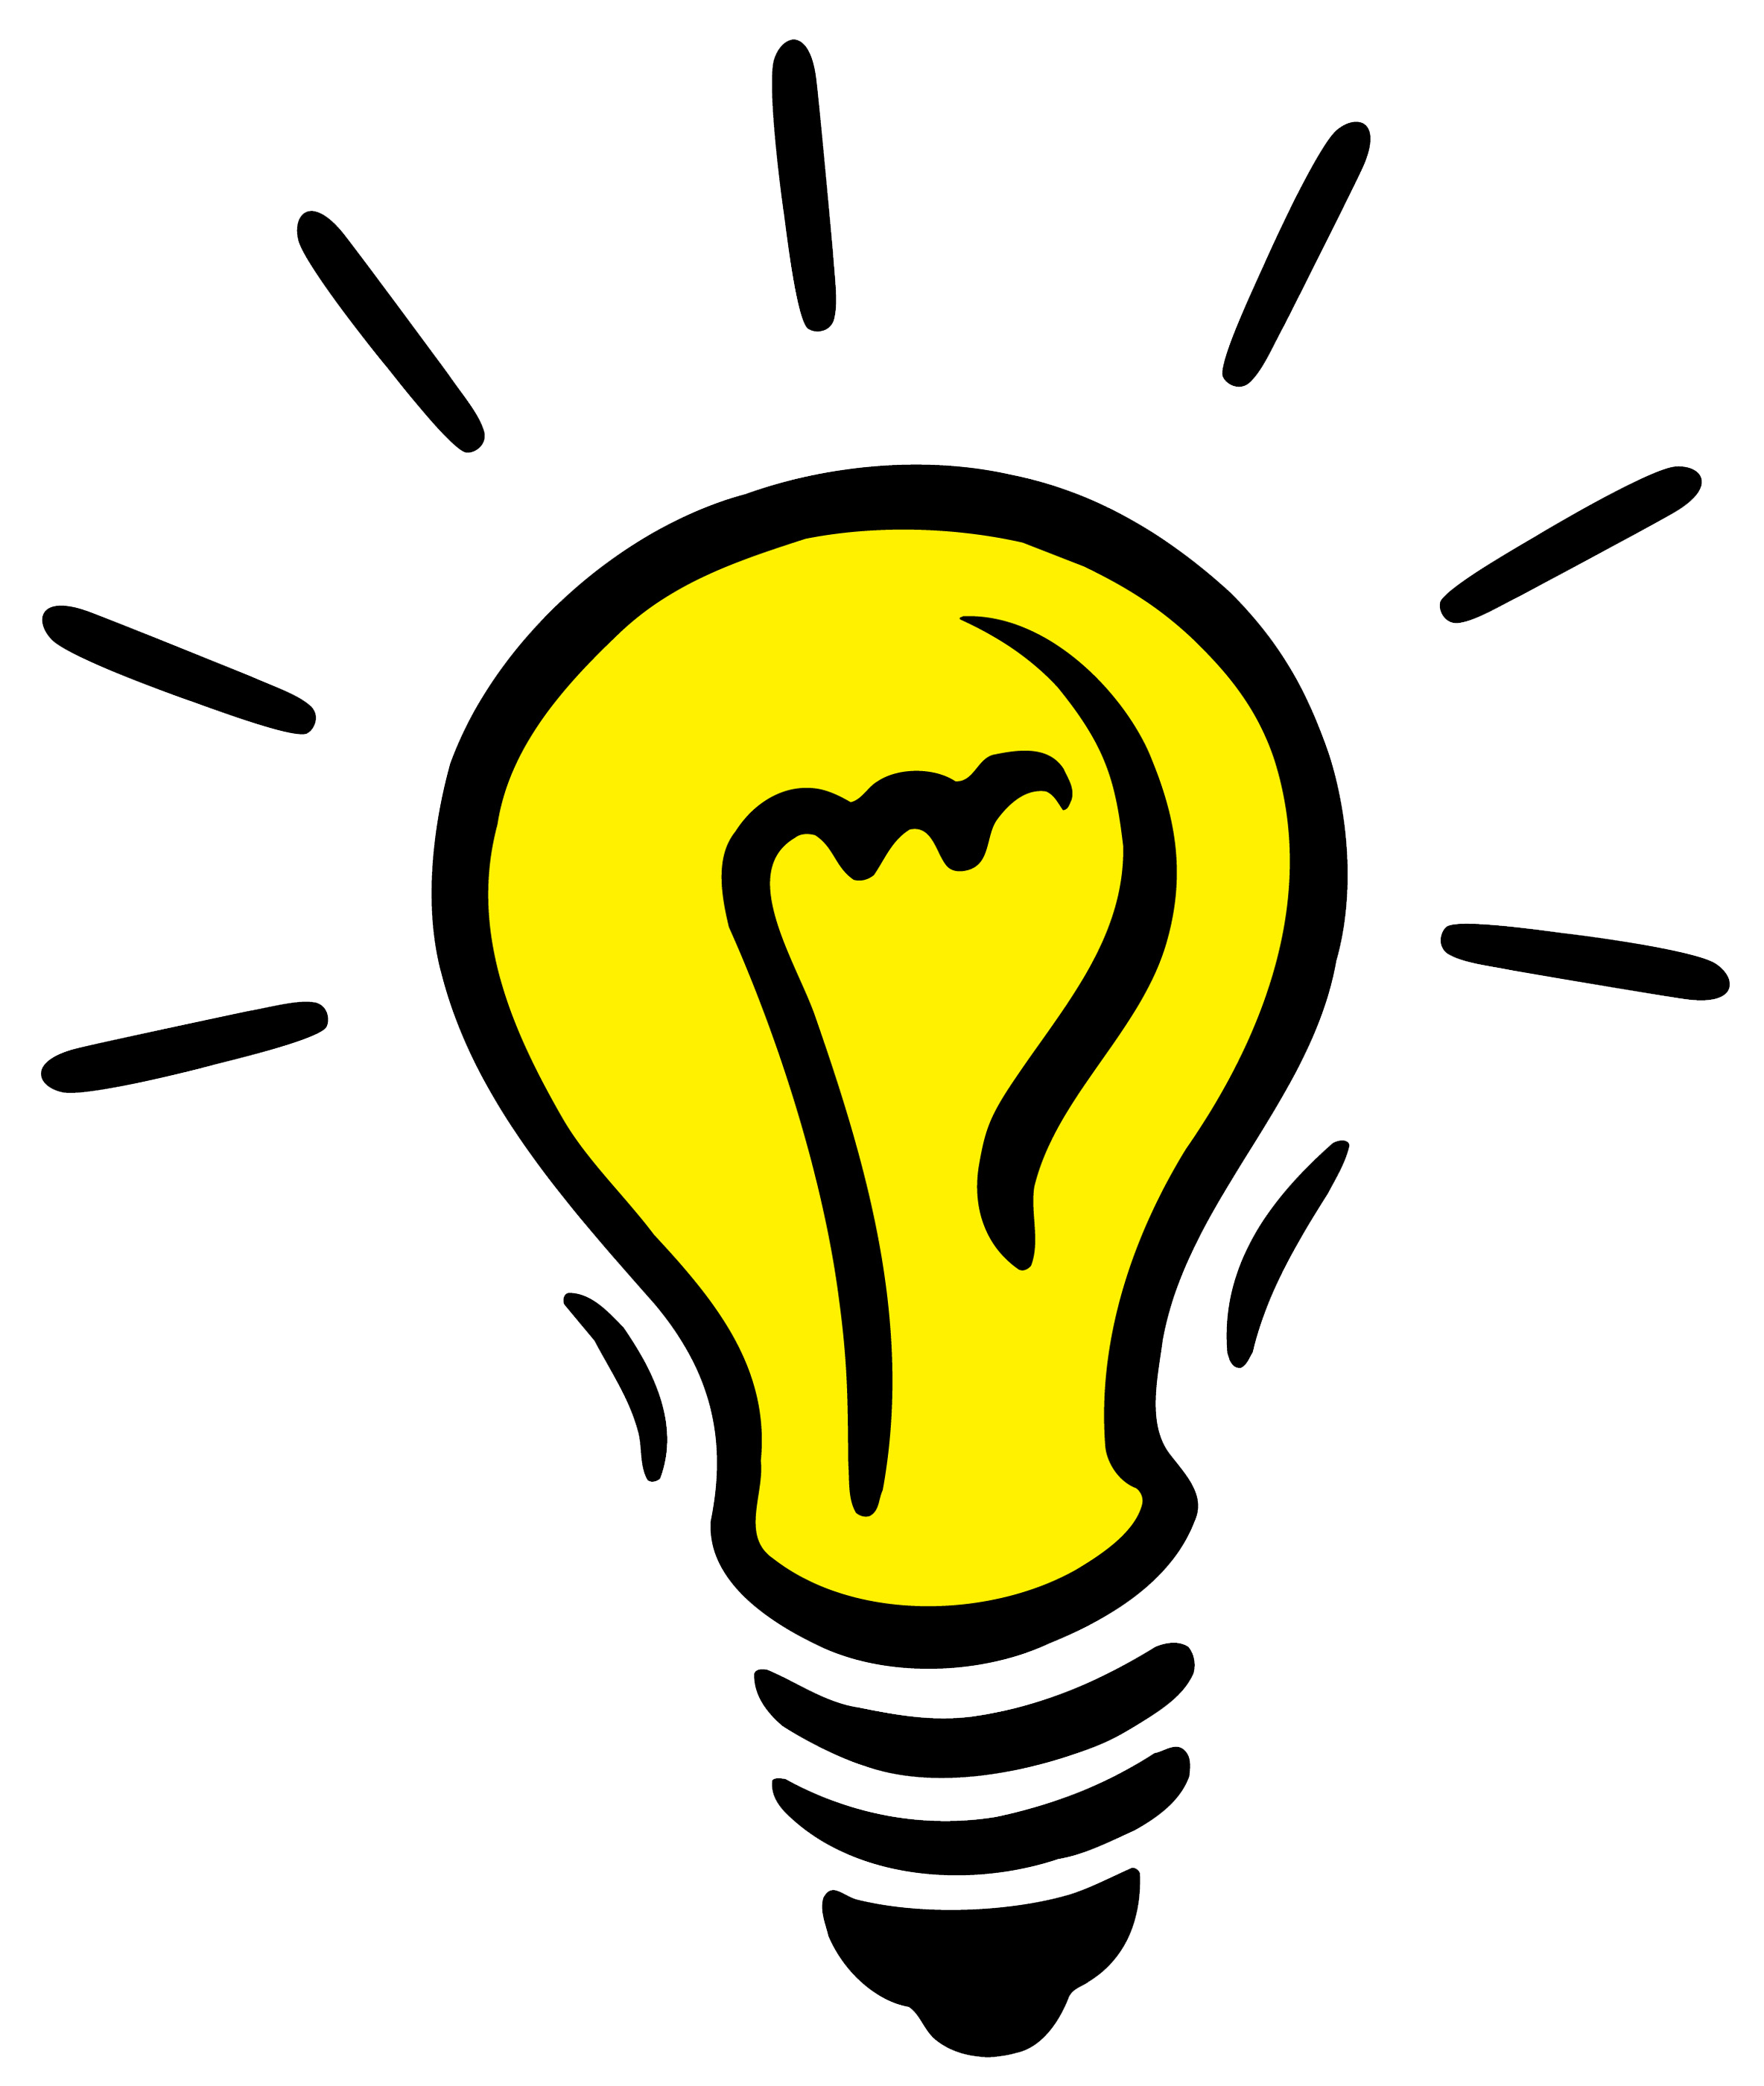 Light Bulb PNG Free Download - Light Bulb PNG